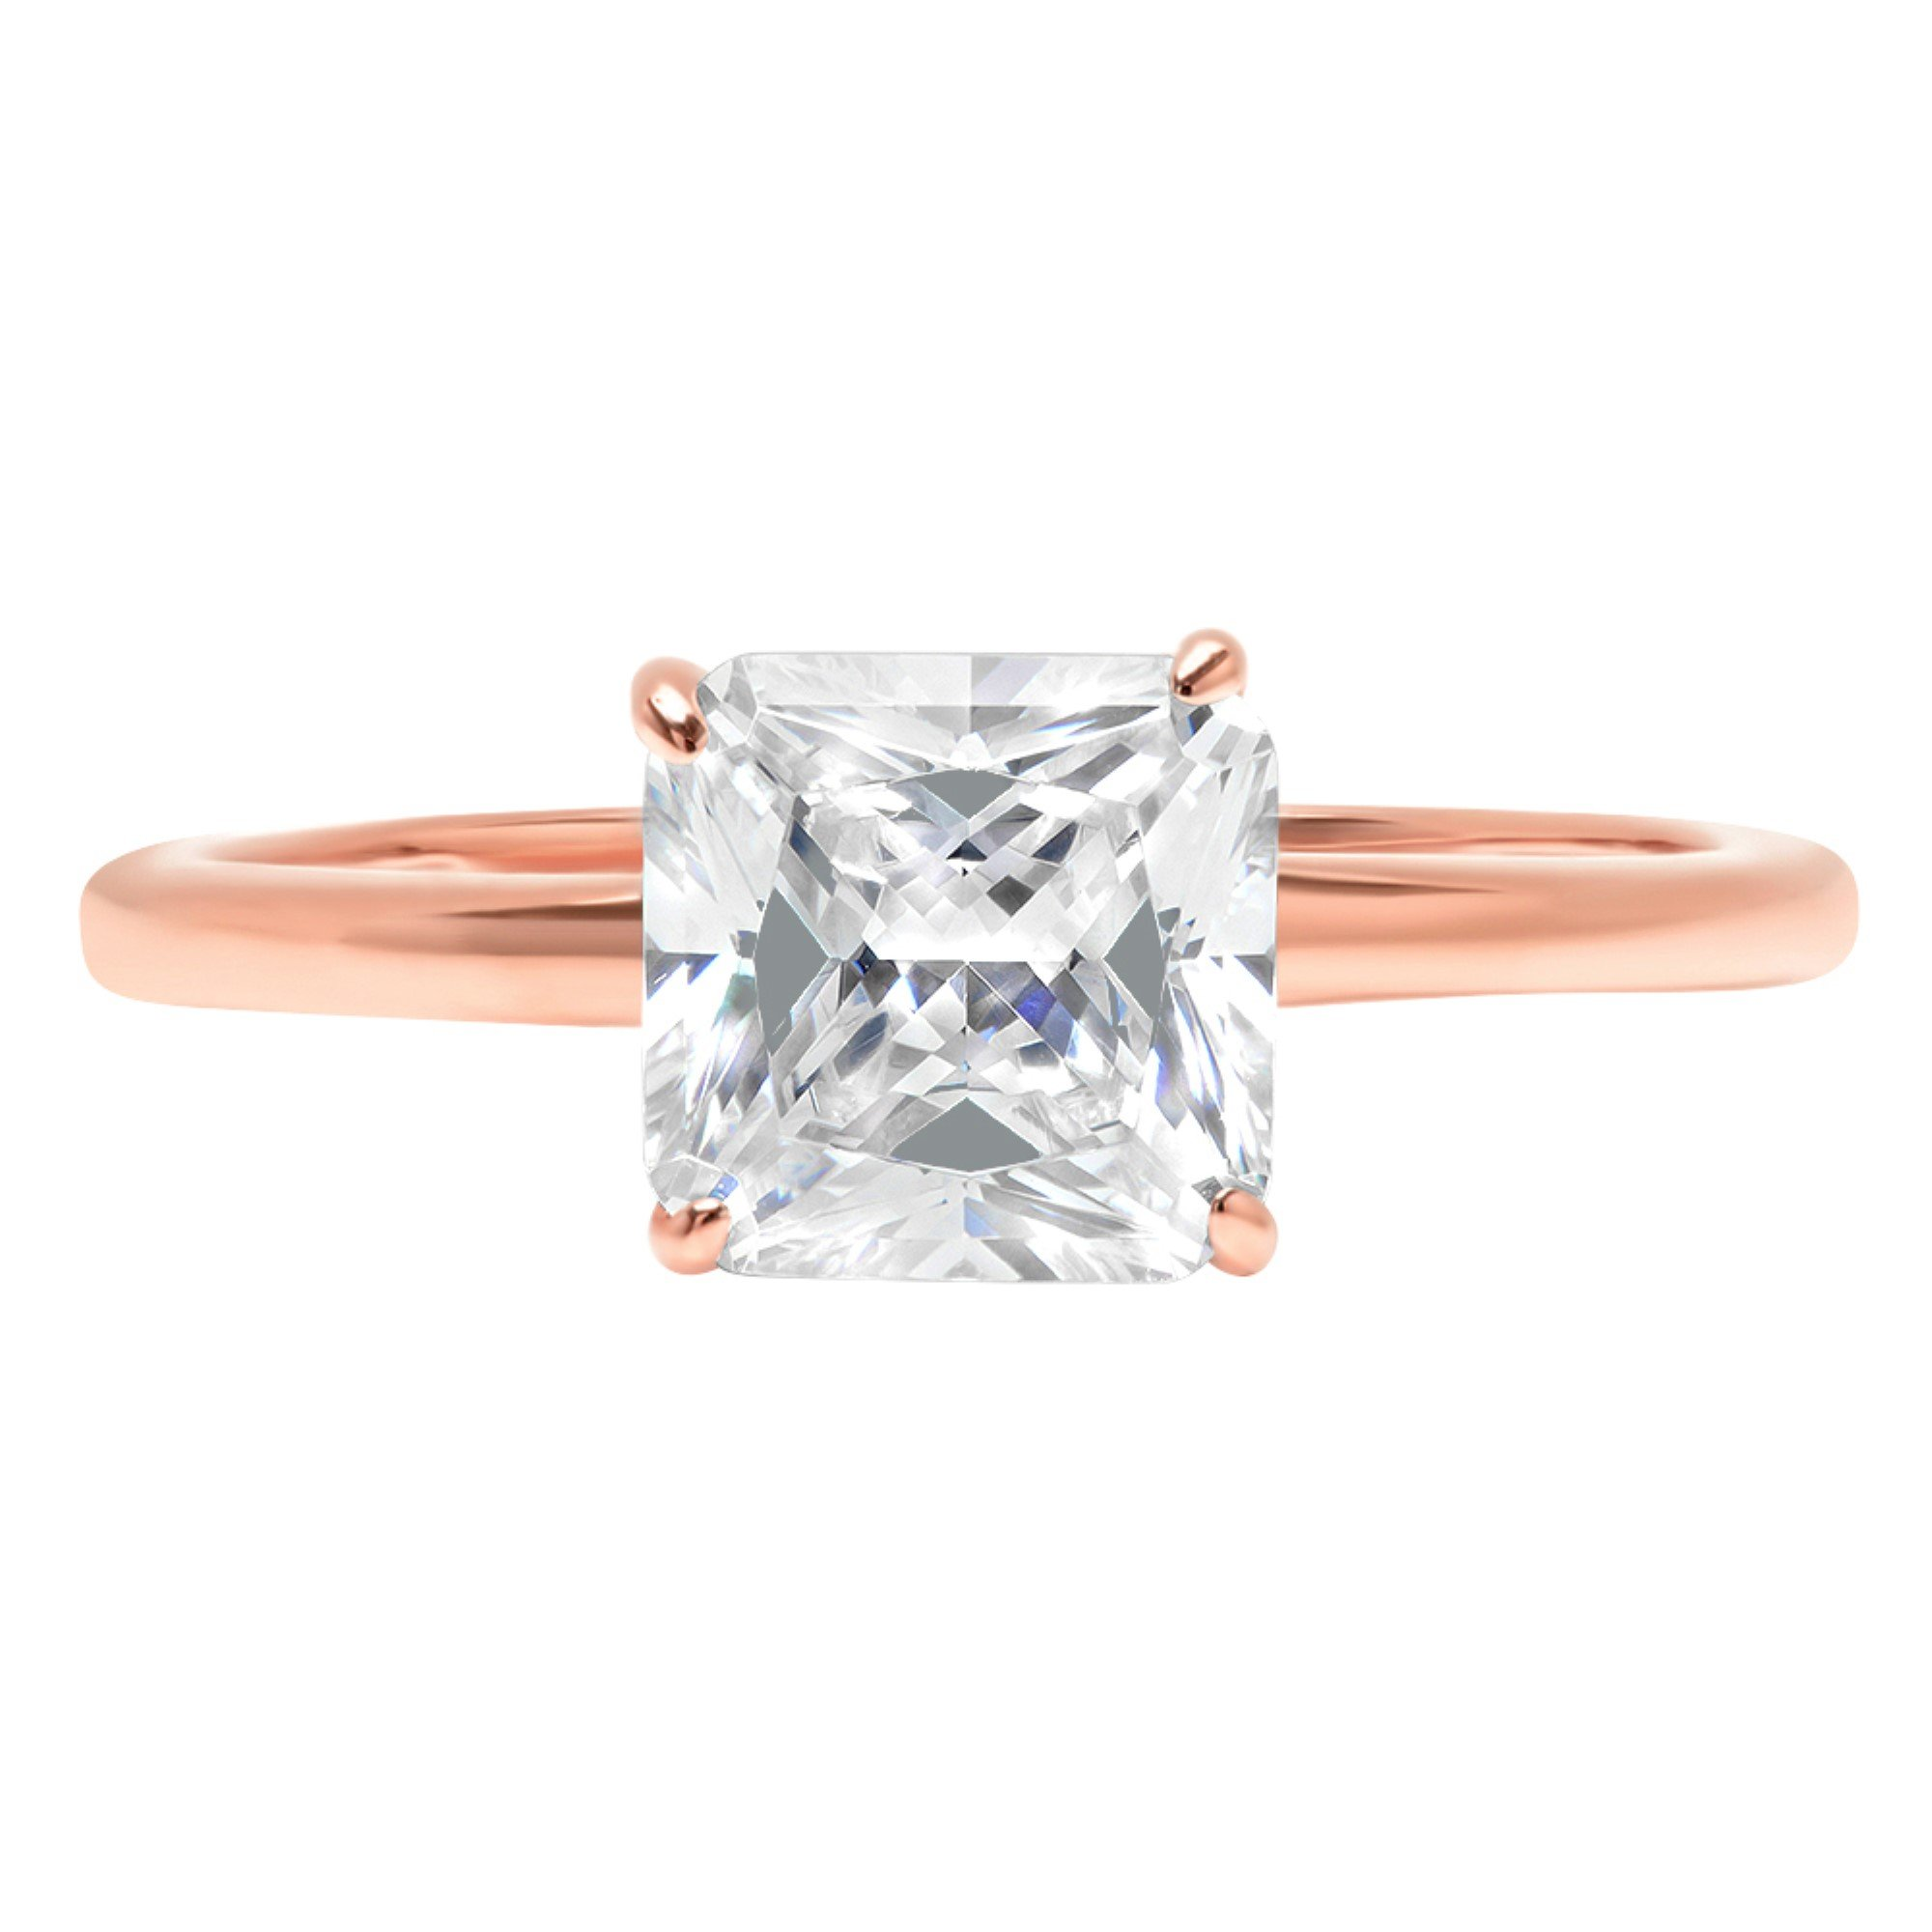 0.95ct Brilliant Asscher Cut Solitaire Highest Quality Moissanite Ideal D 4-Prong Statement Ring in Solid Real 14k Rose Gold for Women